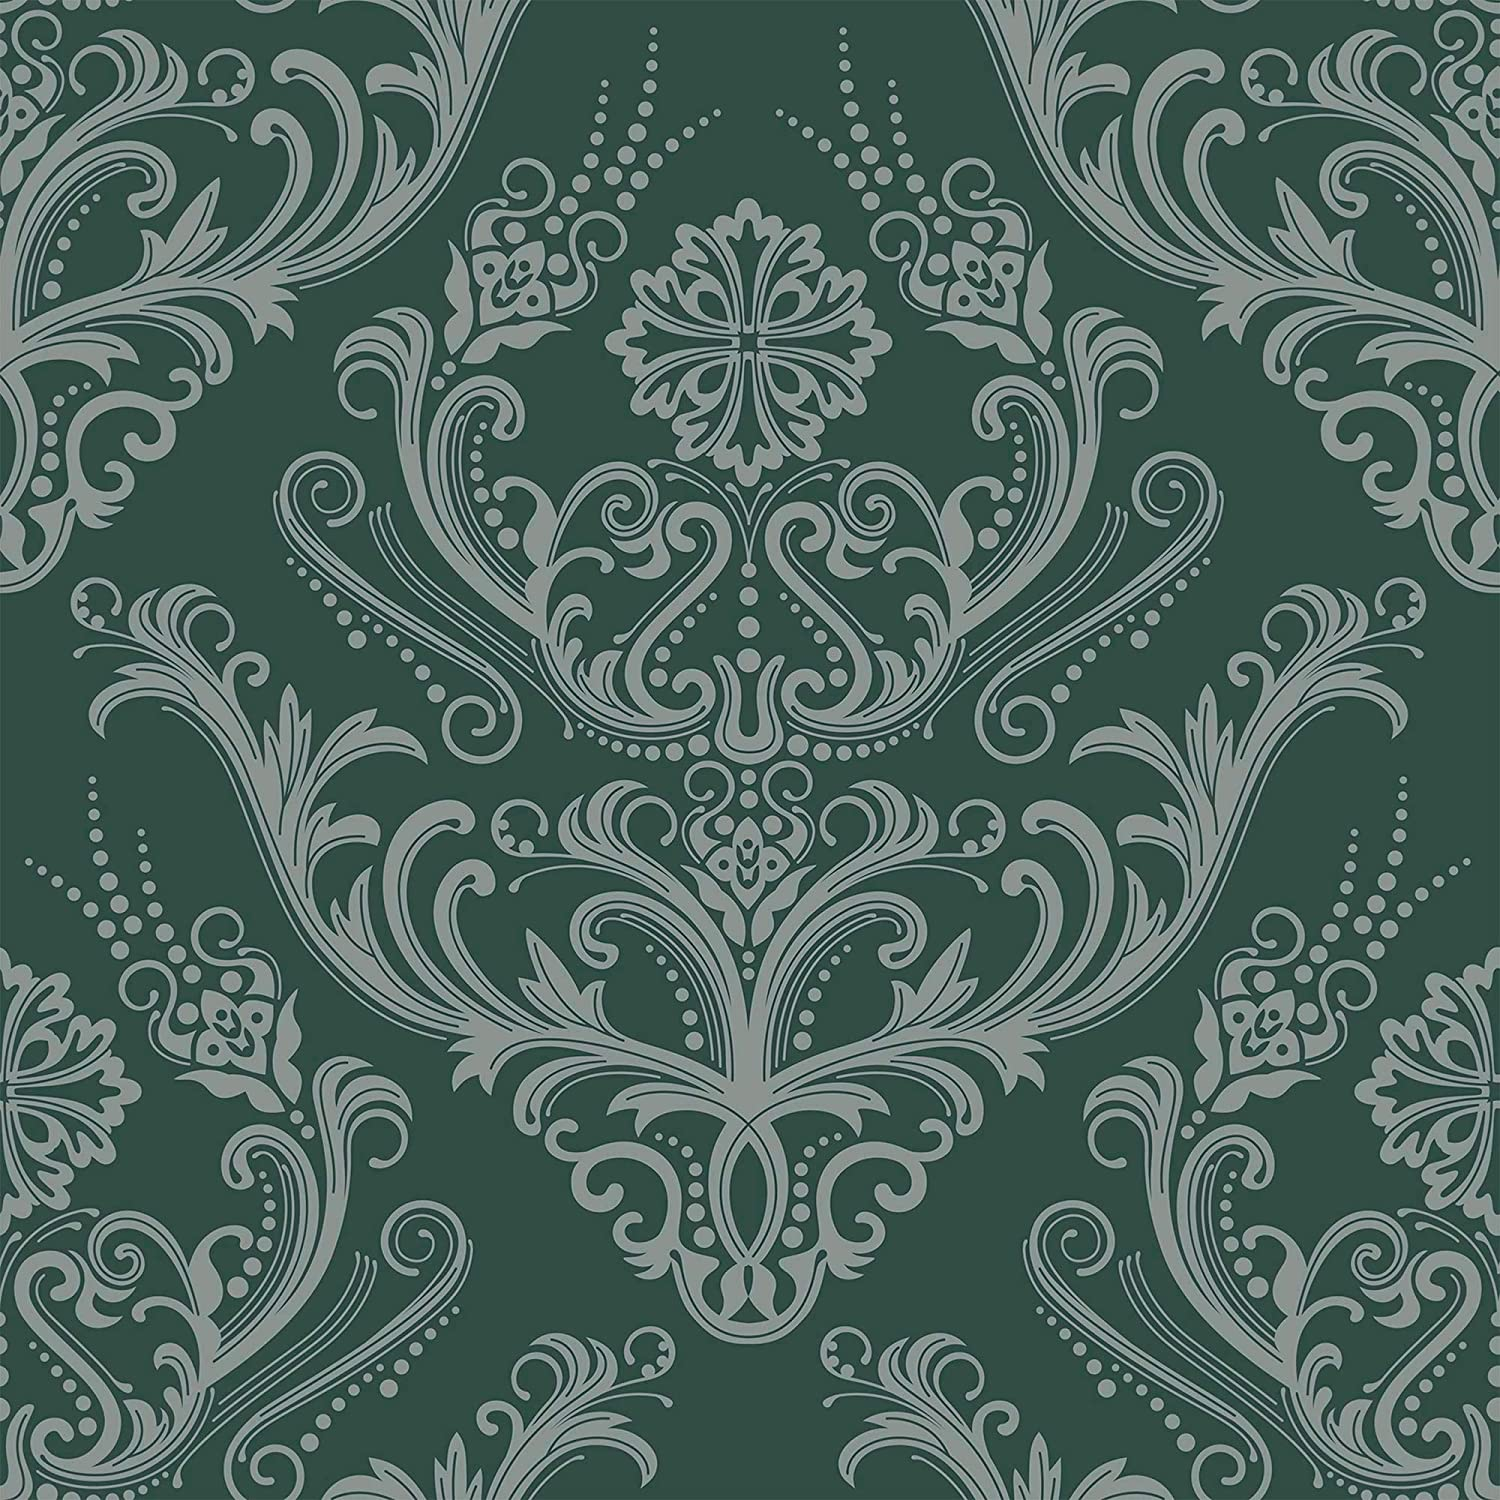 Wallsbyme Peel And Stick Green Damask Basic Fabric Removable Wallpaper 6296 2ft X 8 5ft 61x260cm Amazon Com